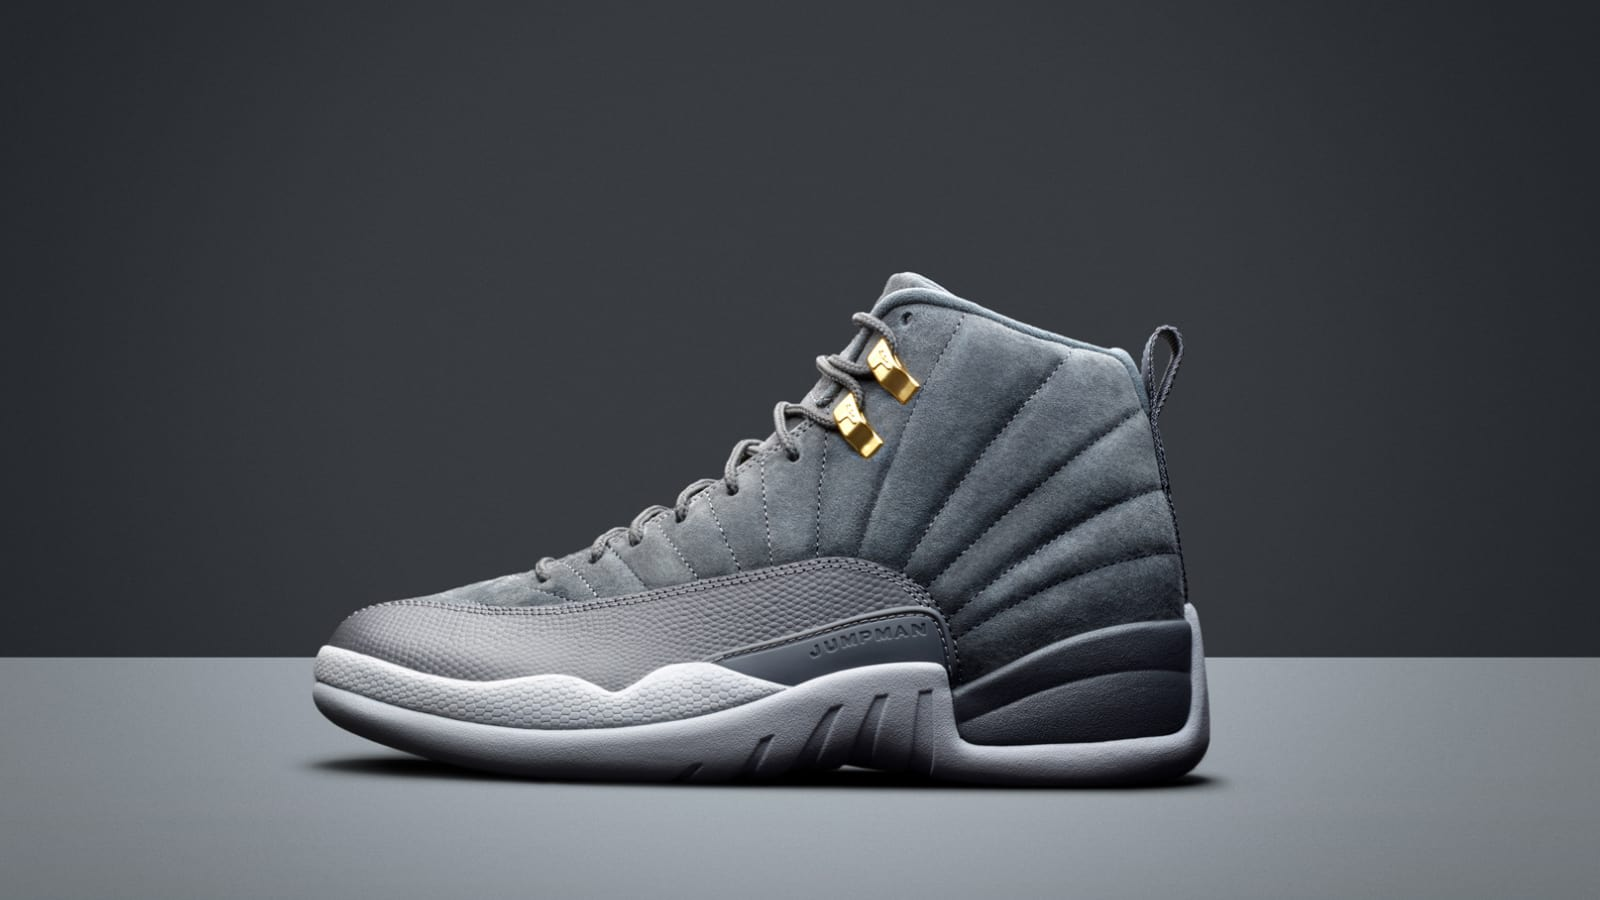 End Features Air Jordan 12 Retro Wolf Grey Launching 18th